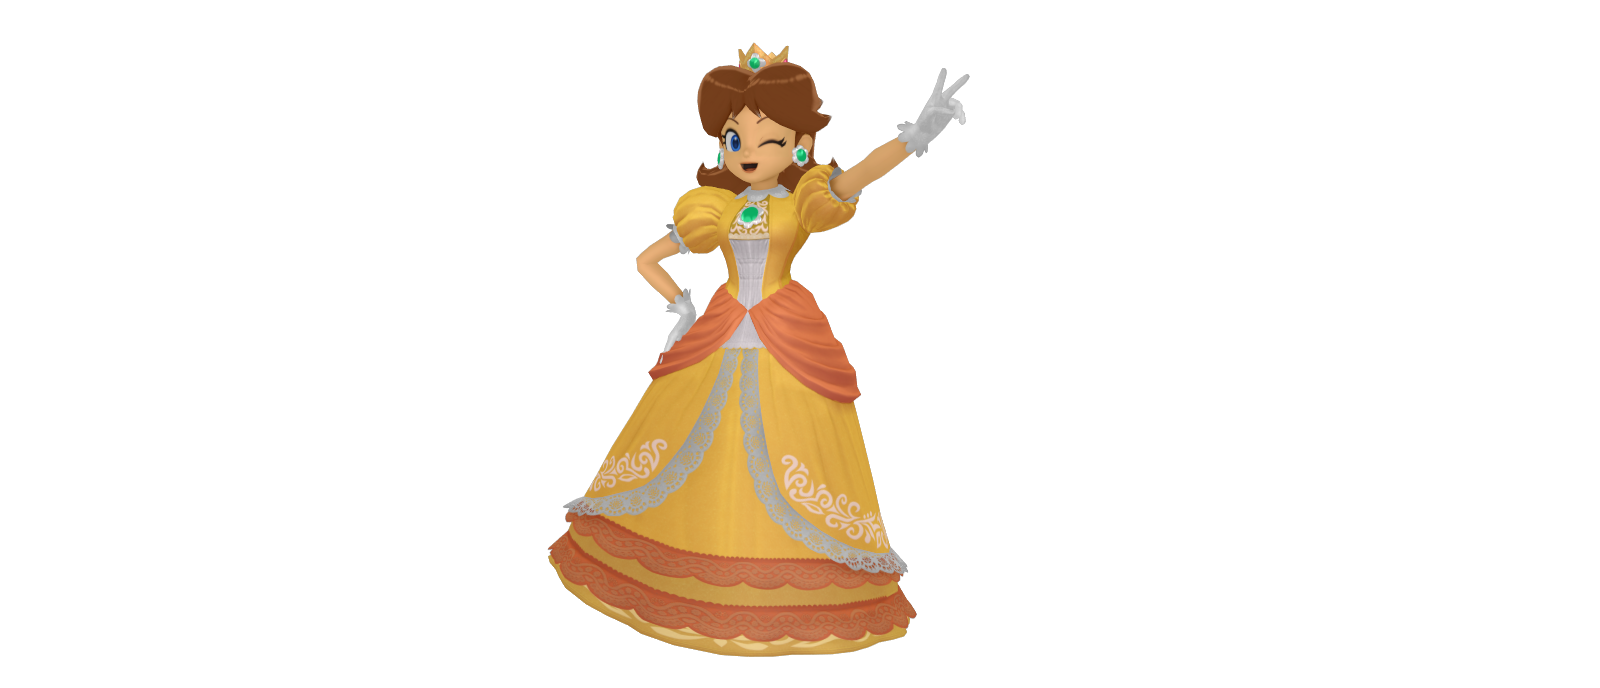 Daisy!.png